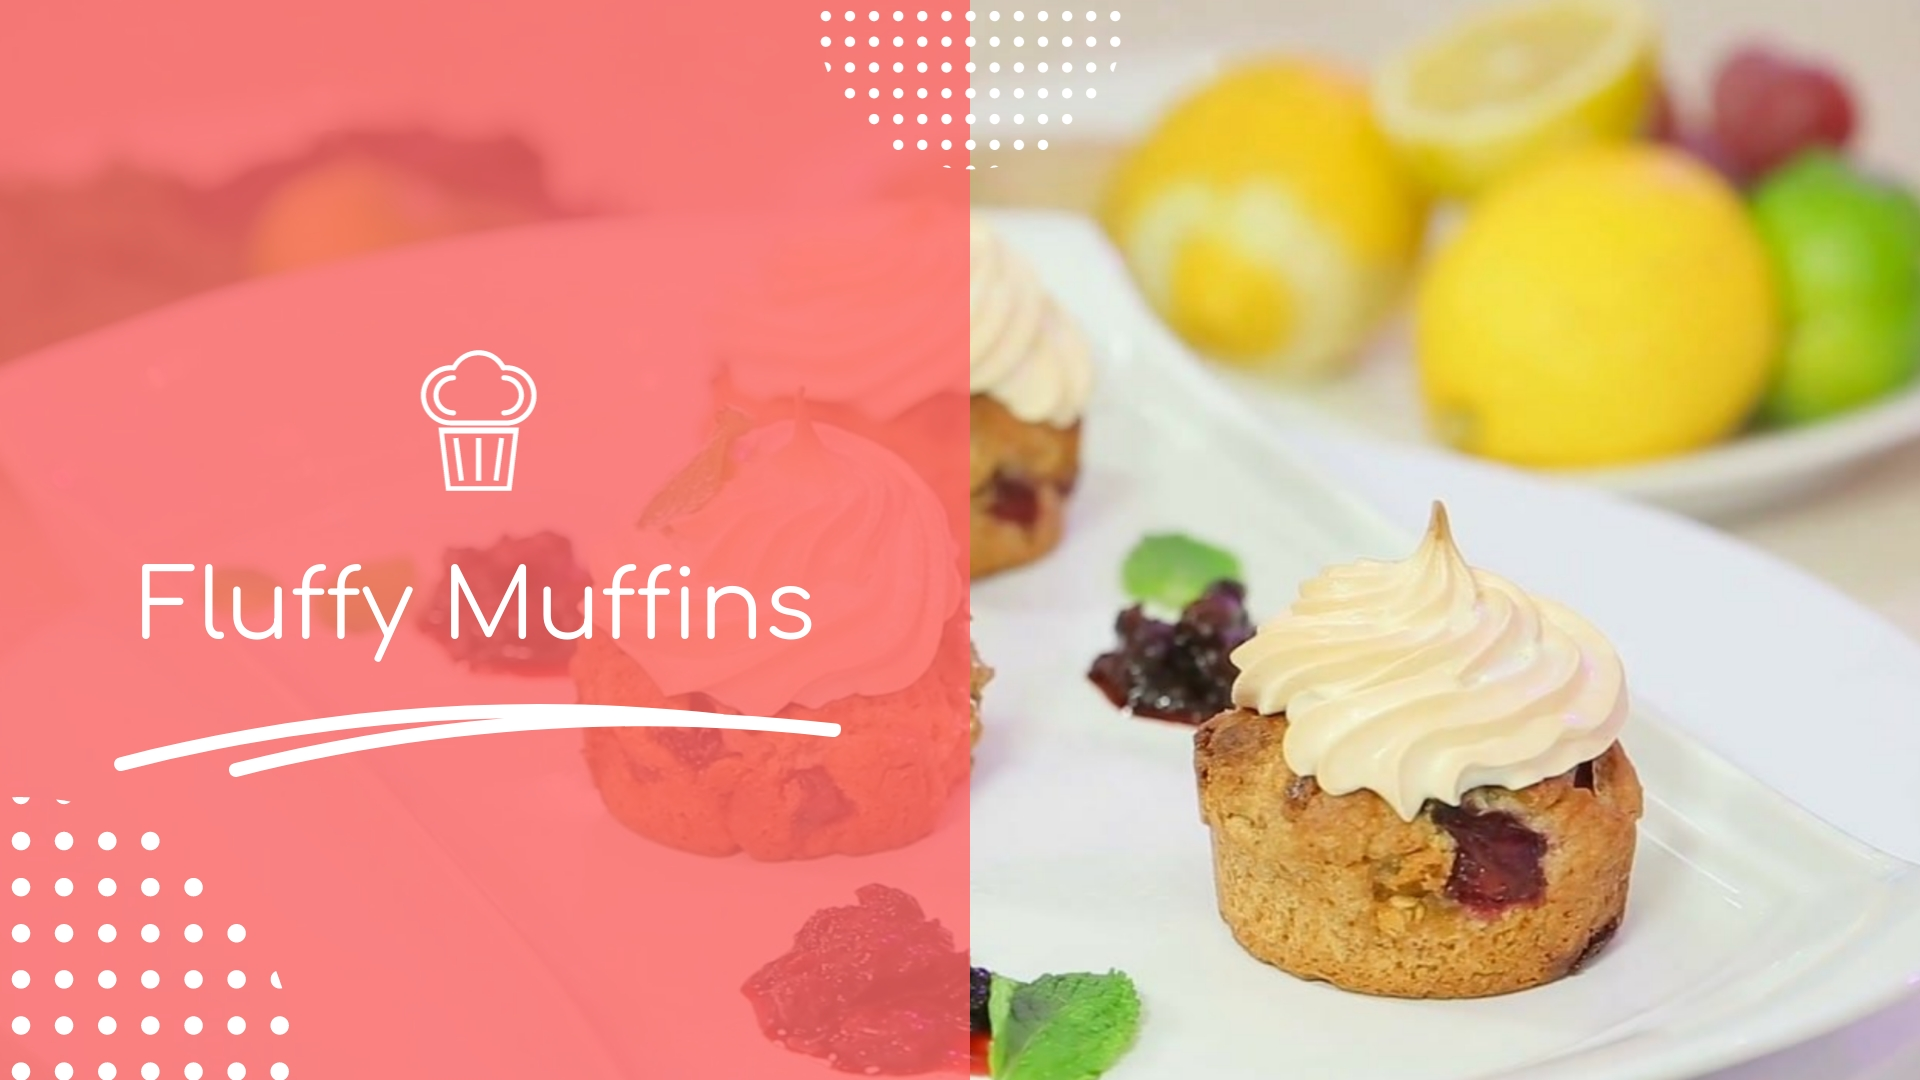 Pastry Shop Product Video Template